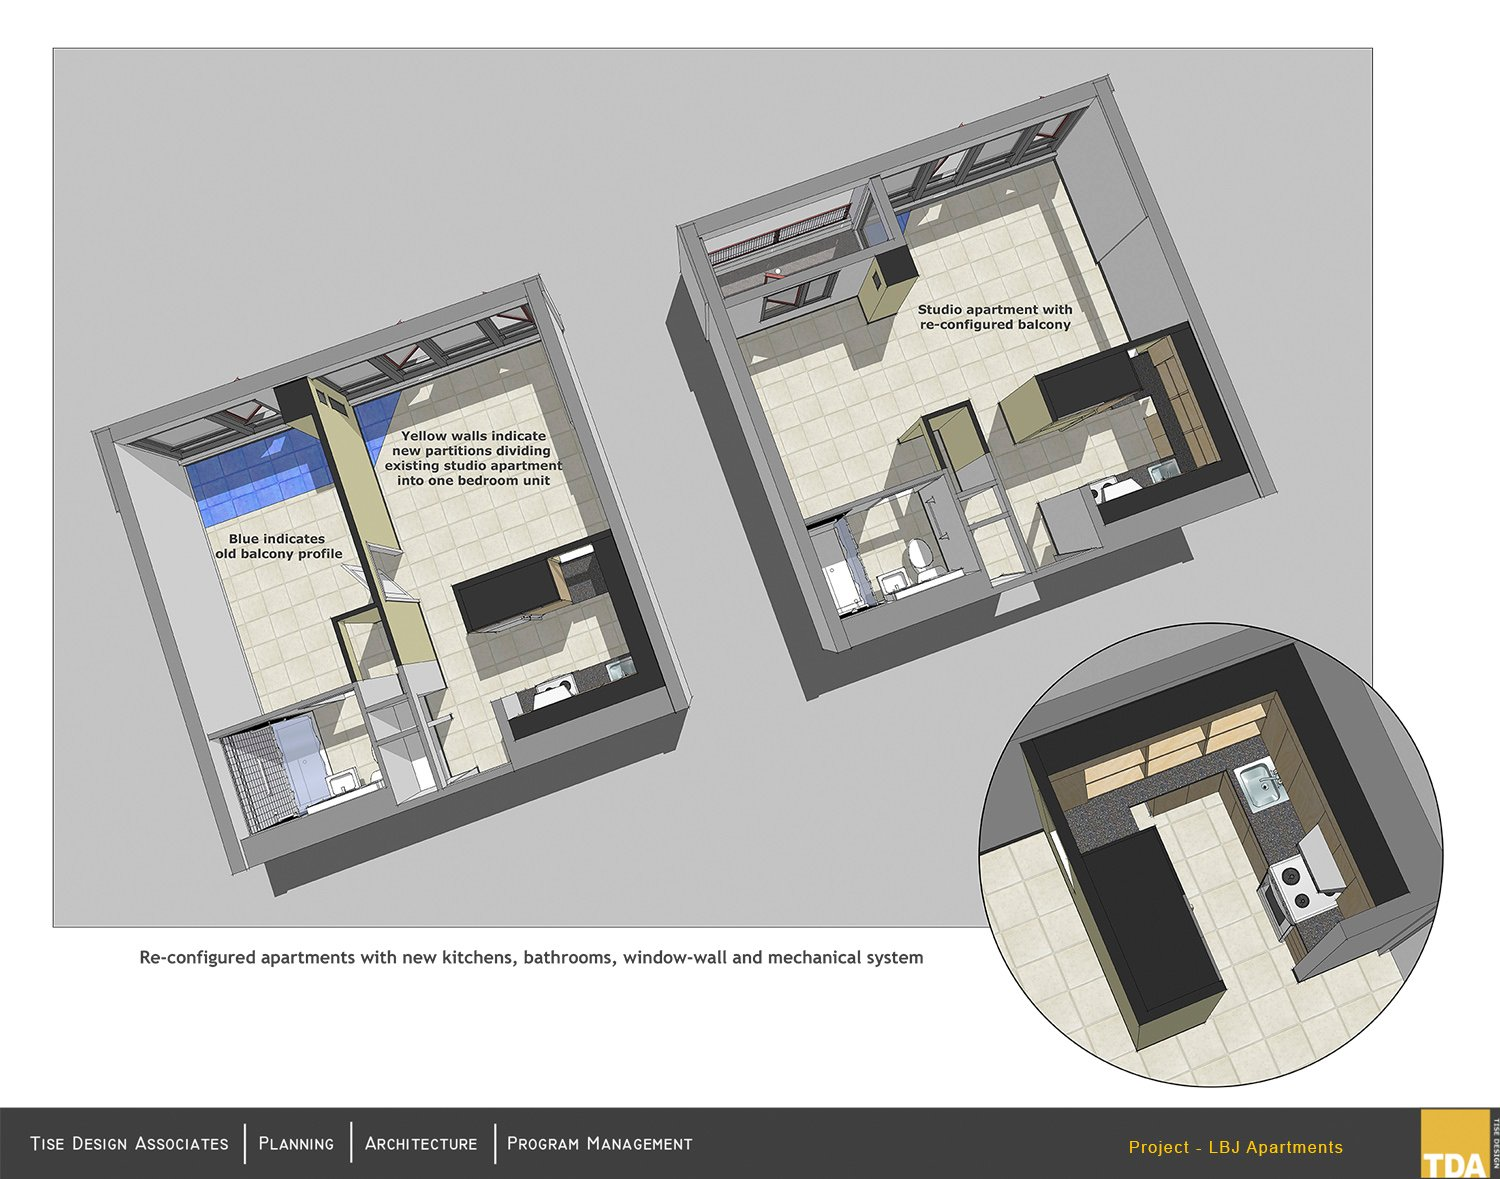 Re-configured apartments with new kitchens, bathrooms and mechanical system Tise Design Associates}